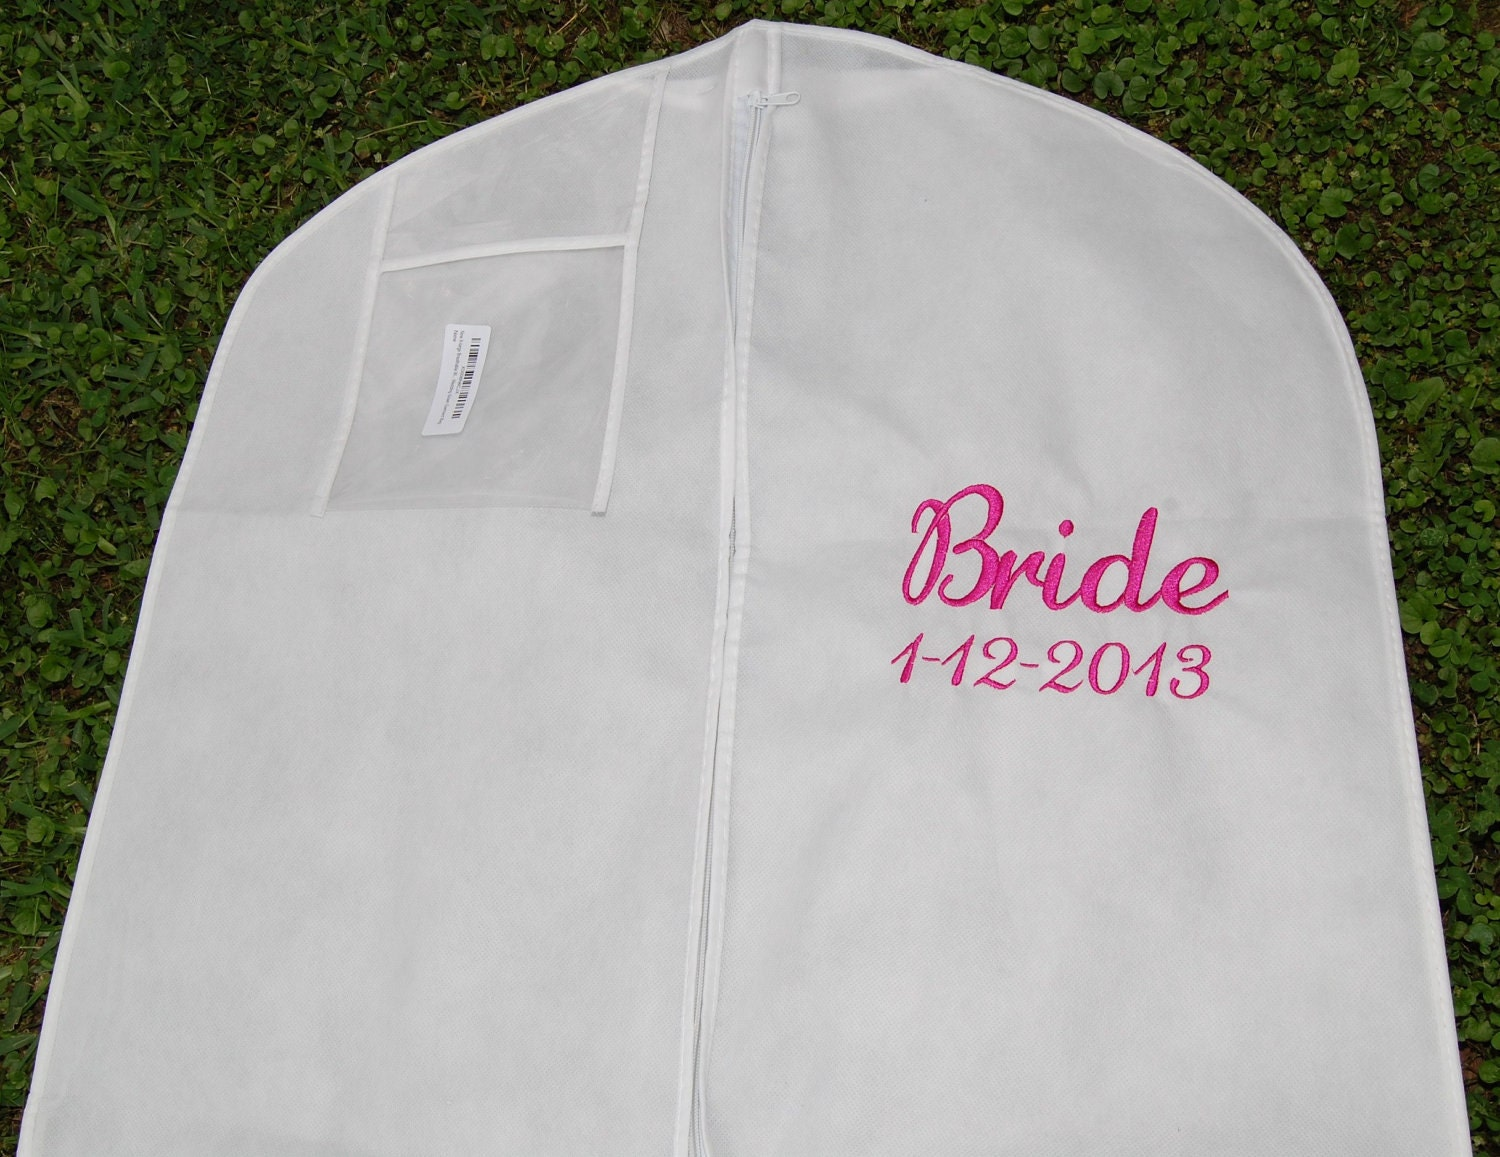 personalized xl extra large bridal gown wedding dress bag Gown Dress Garment Bag FREE SHIPPING zoom